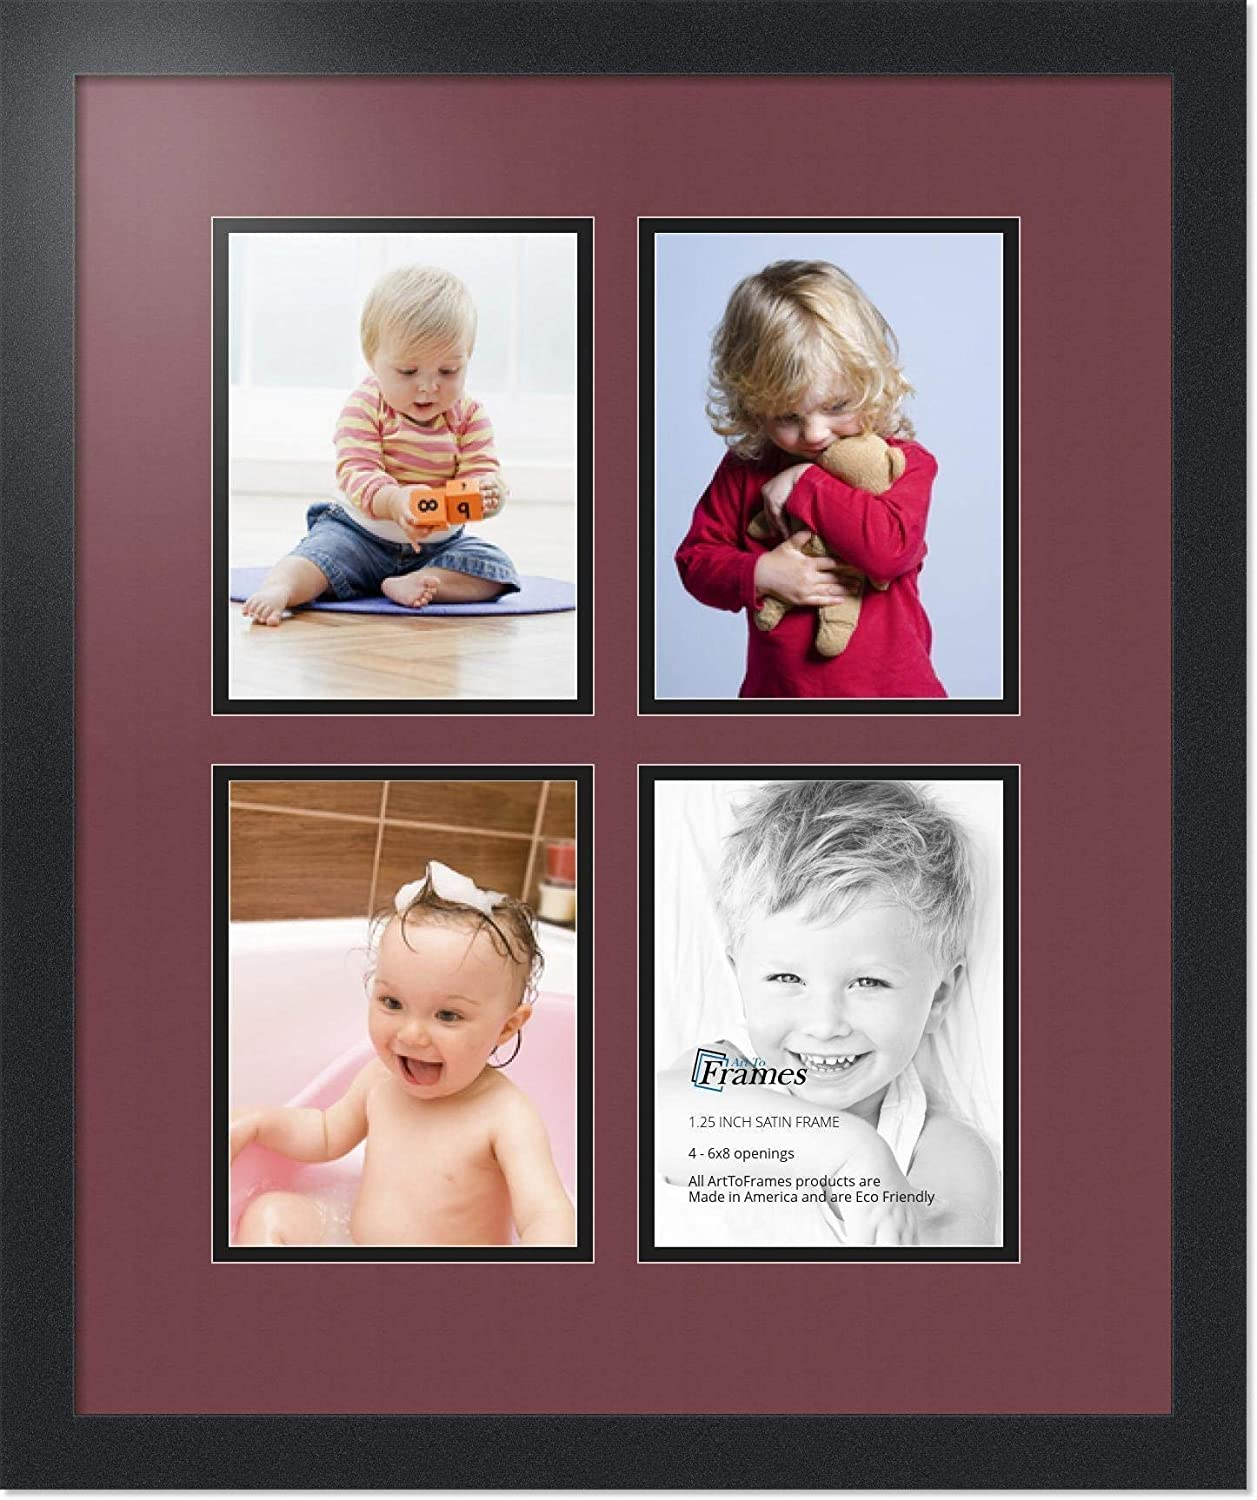 ArtToFrames Collage Photo Frame Double Mat with 4-6x8 Openings and Satin Black Frame Double-Multimat-534-594//89-FRBW26079